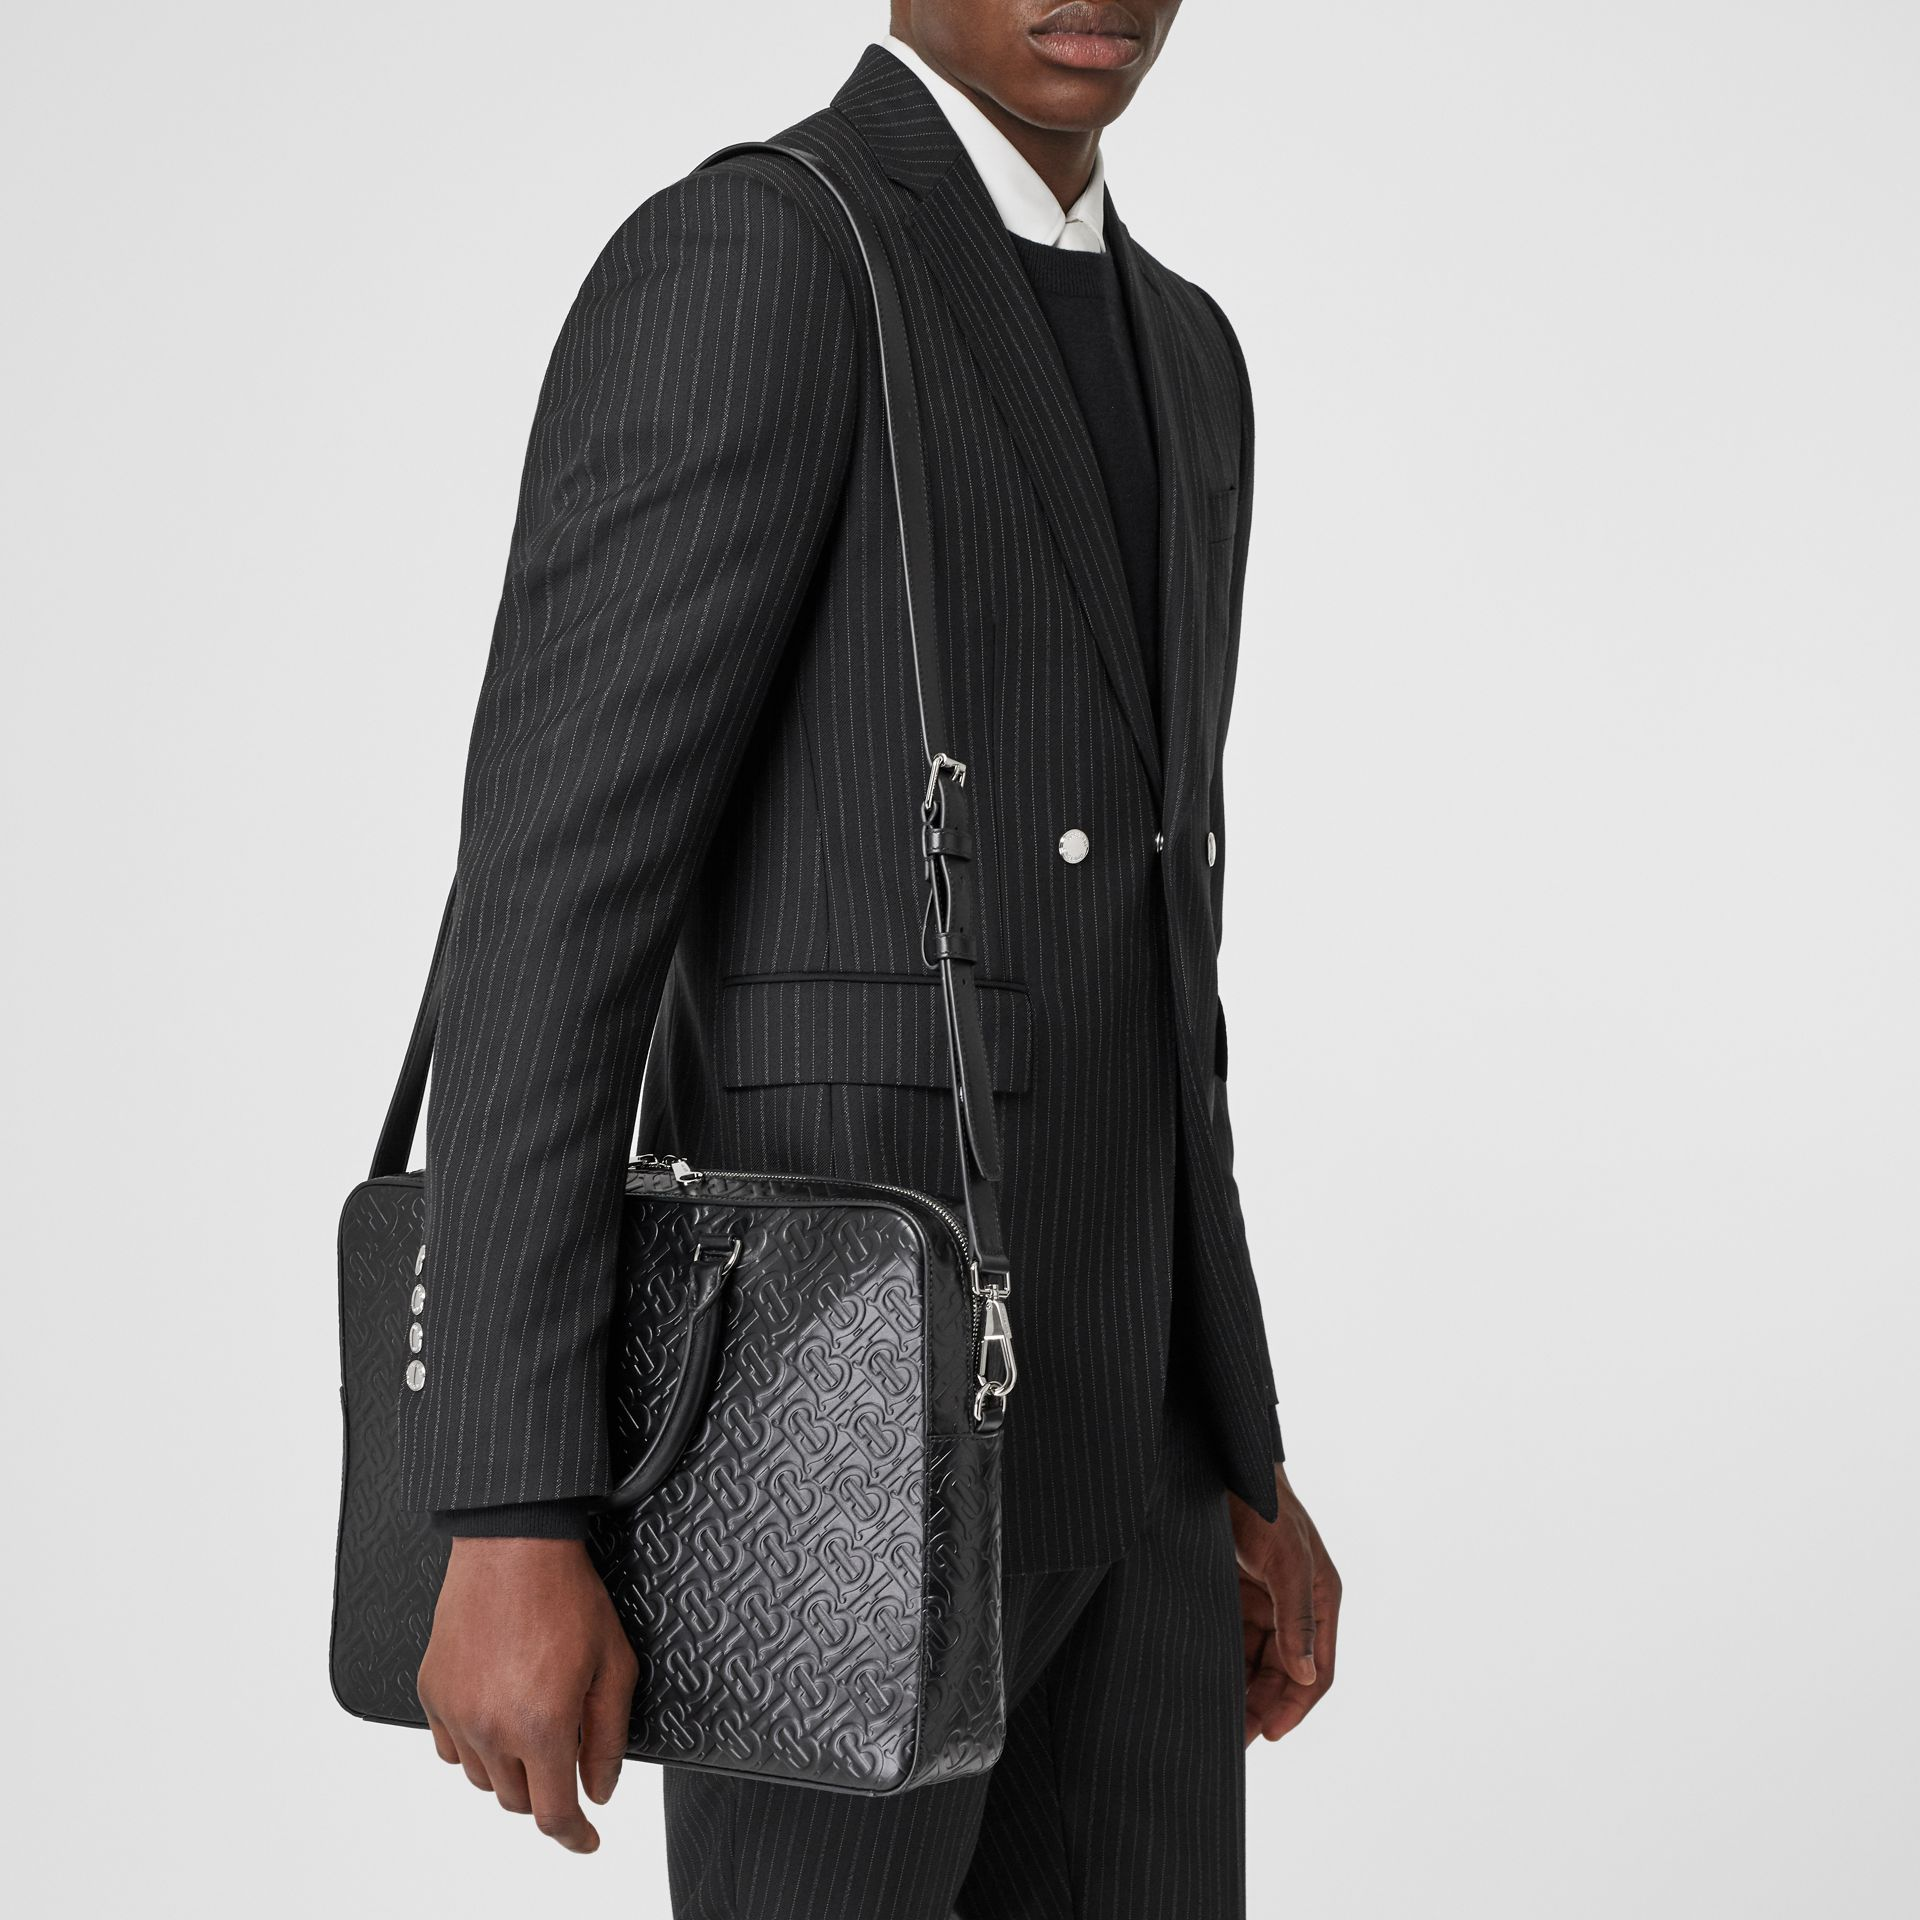 Monogram Leather Briefcase in Black - Men | Burberry - gallery image 2